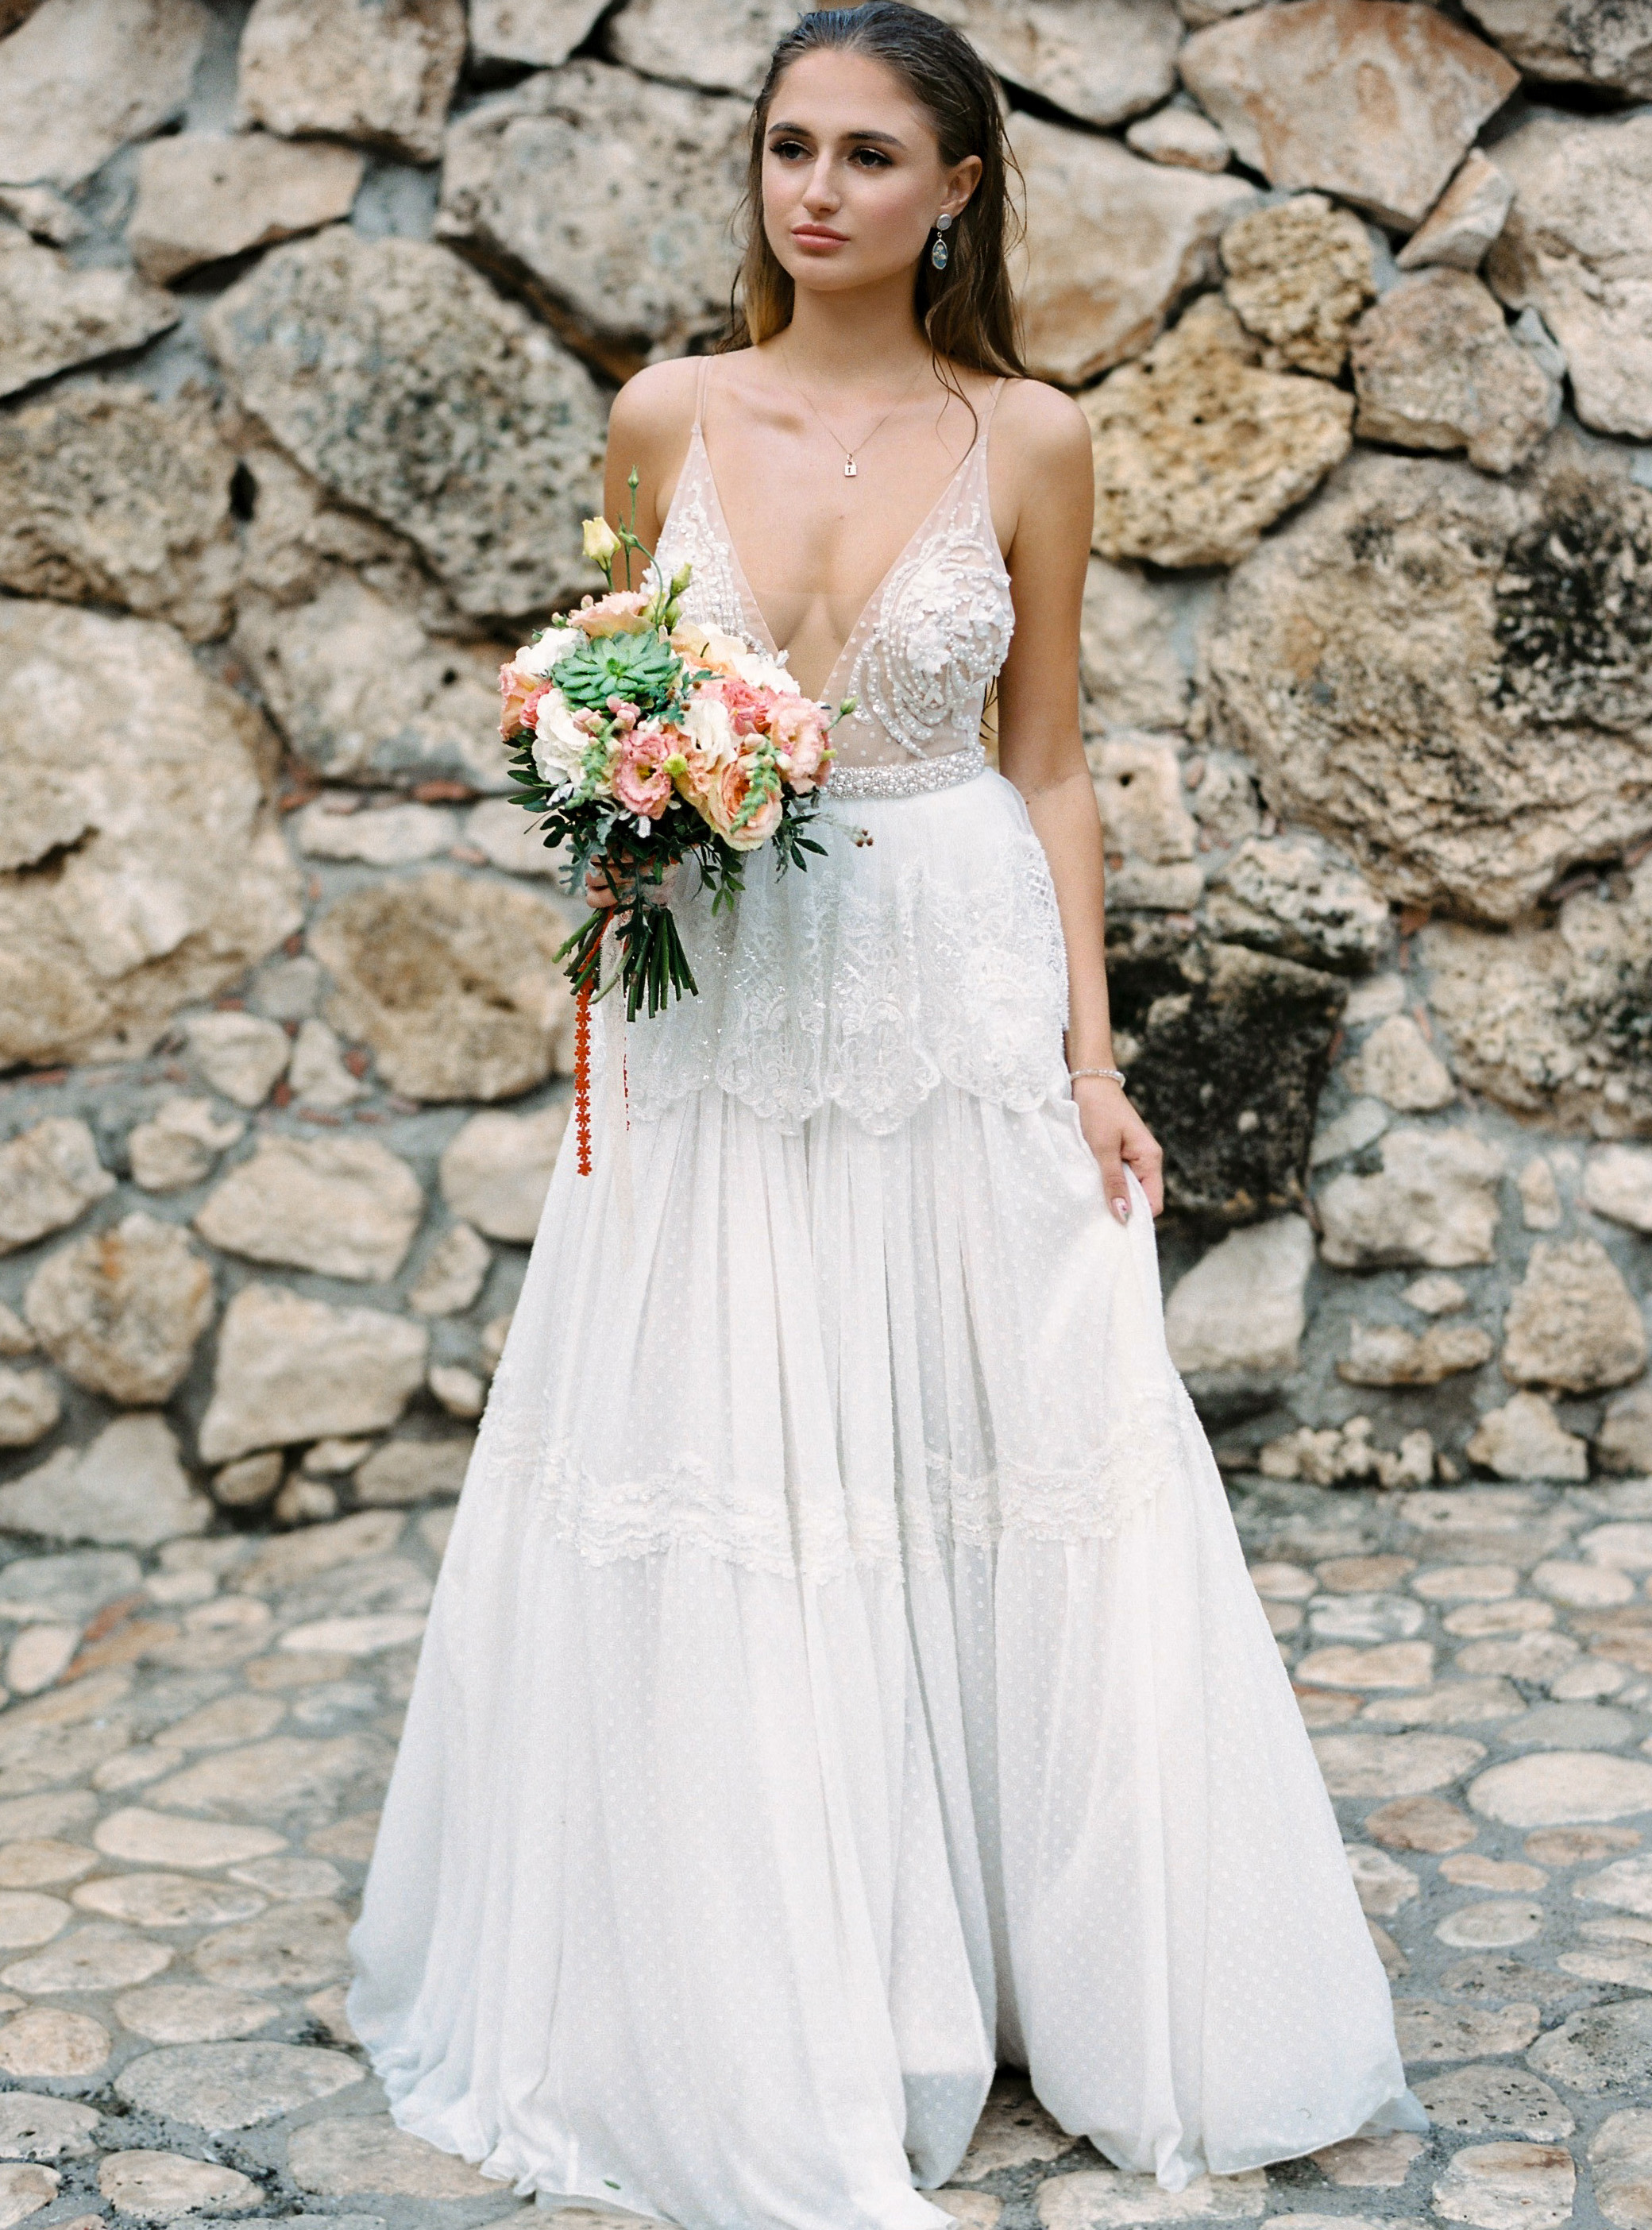 Backless wedding dress \ Anna Skoblikova \ Gentle Angel \ 2021